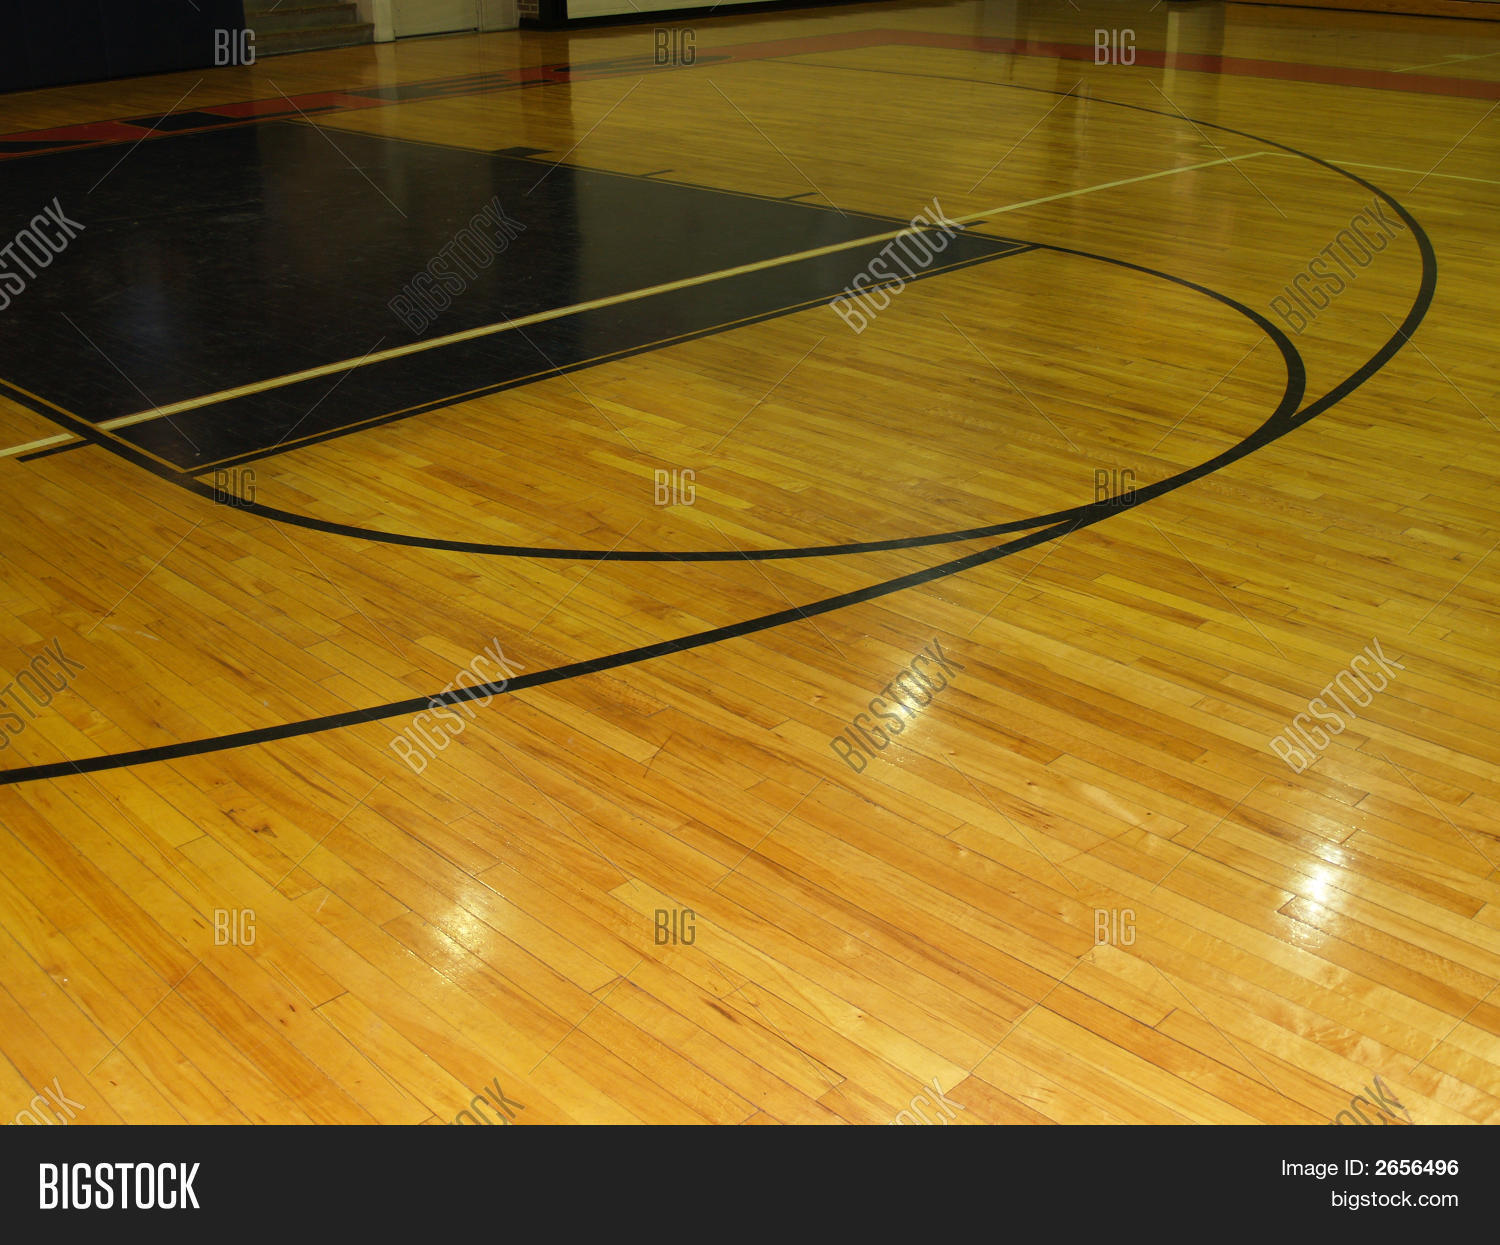 Wood floor on indoor basketball image photo bigstock for Custom indoor basketball court